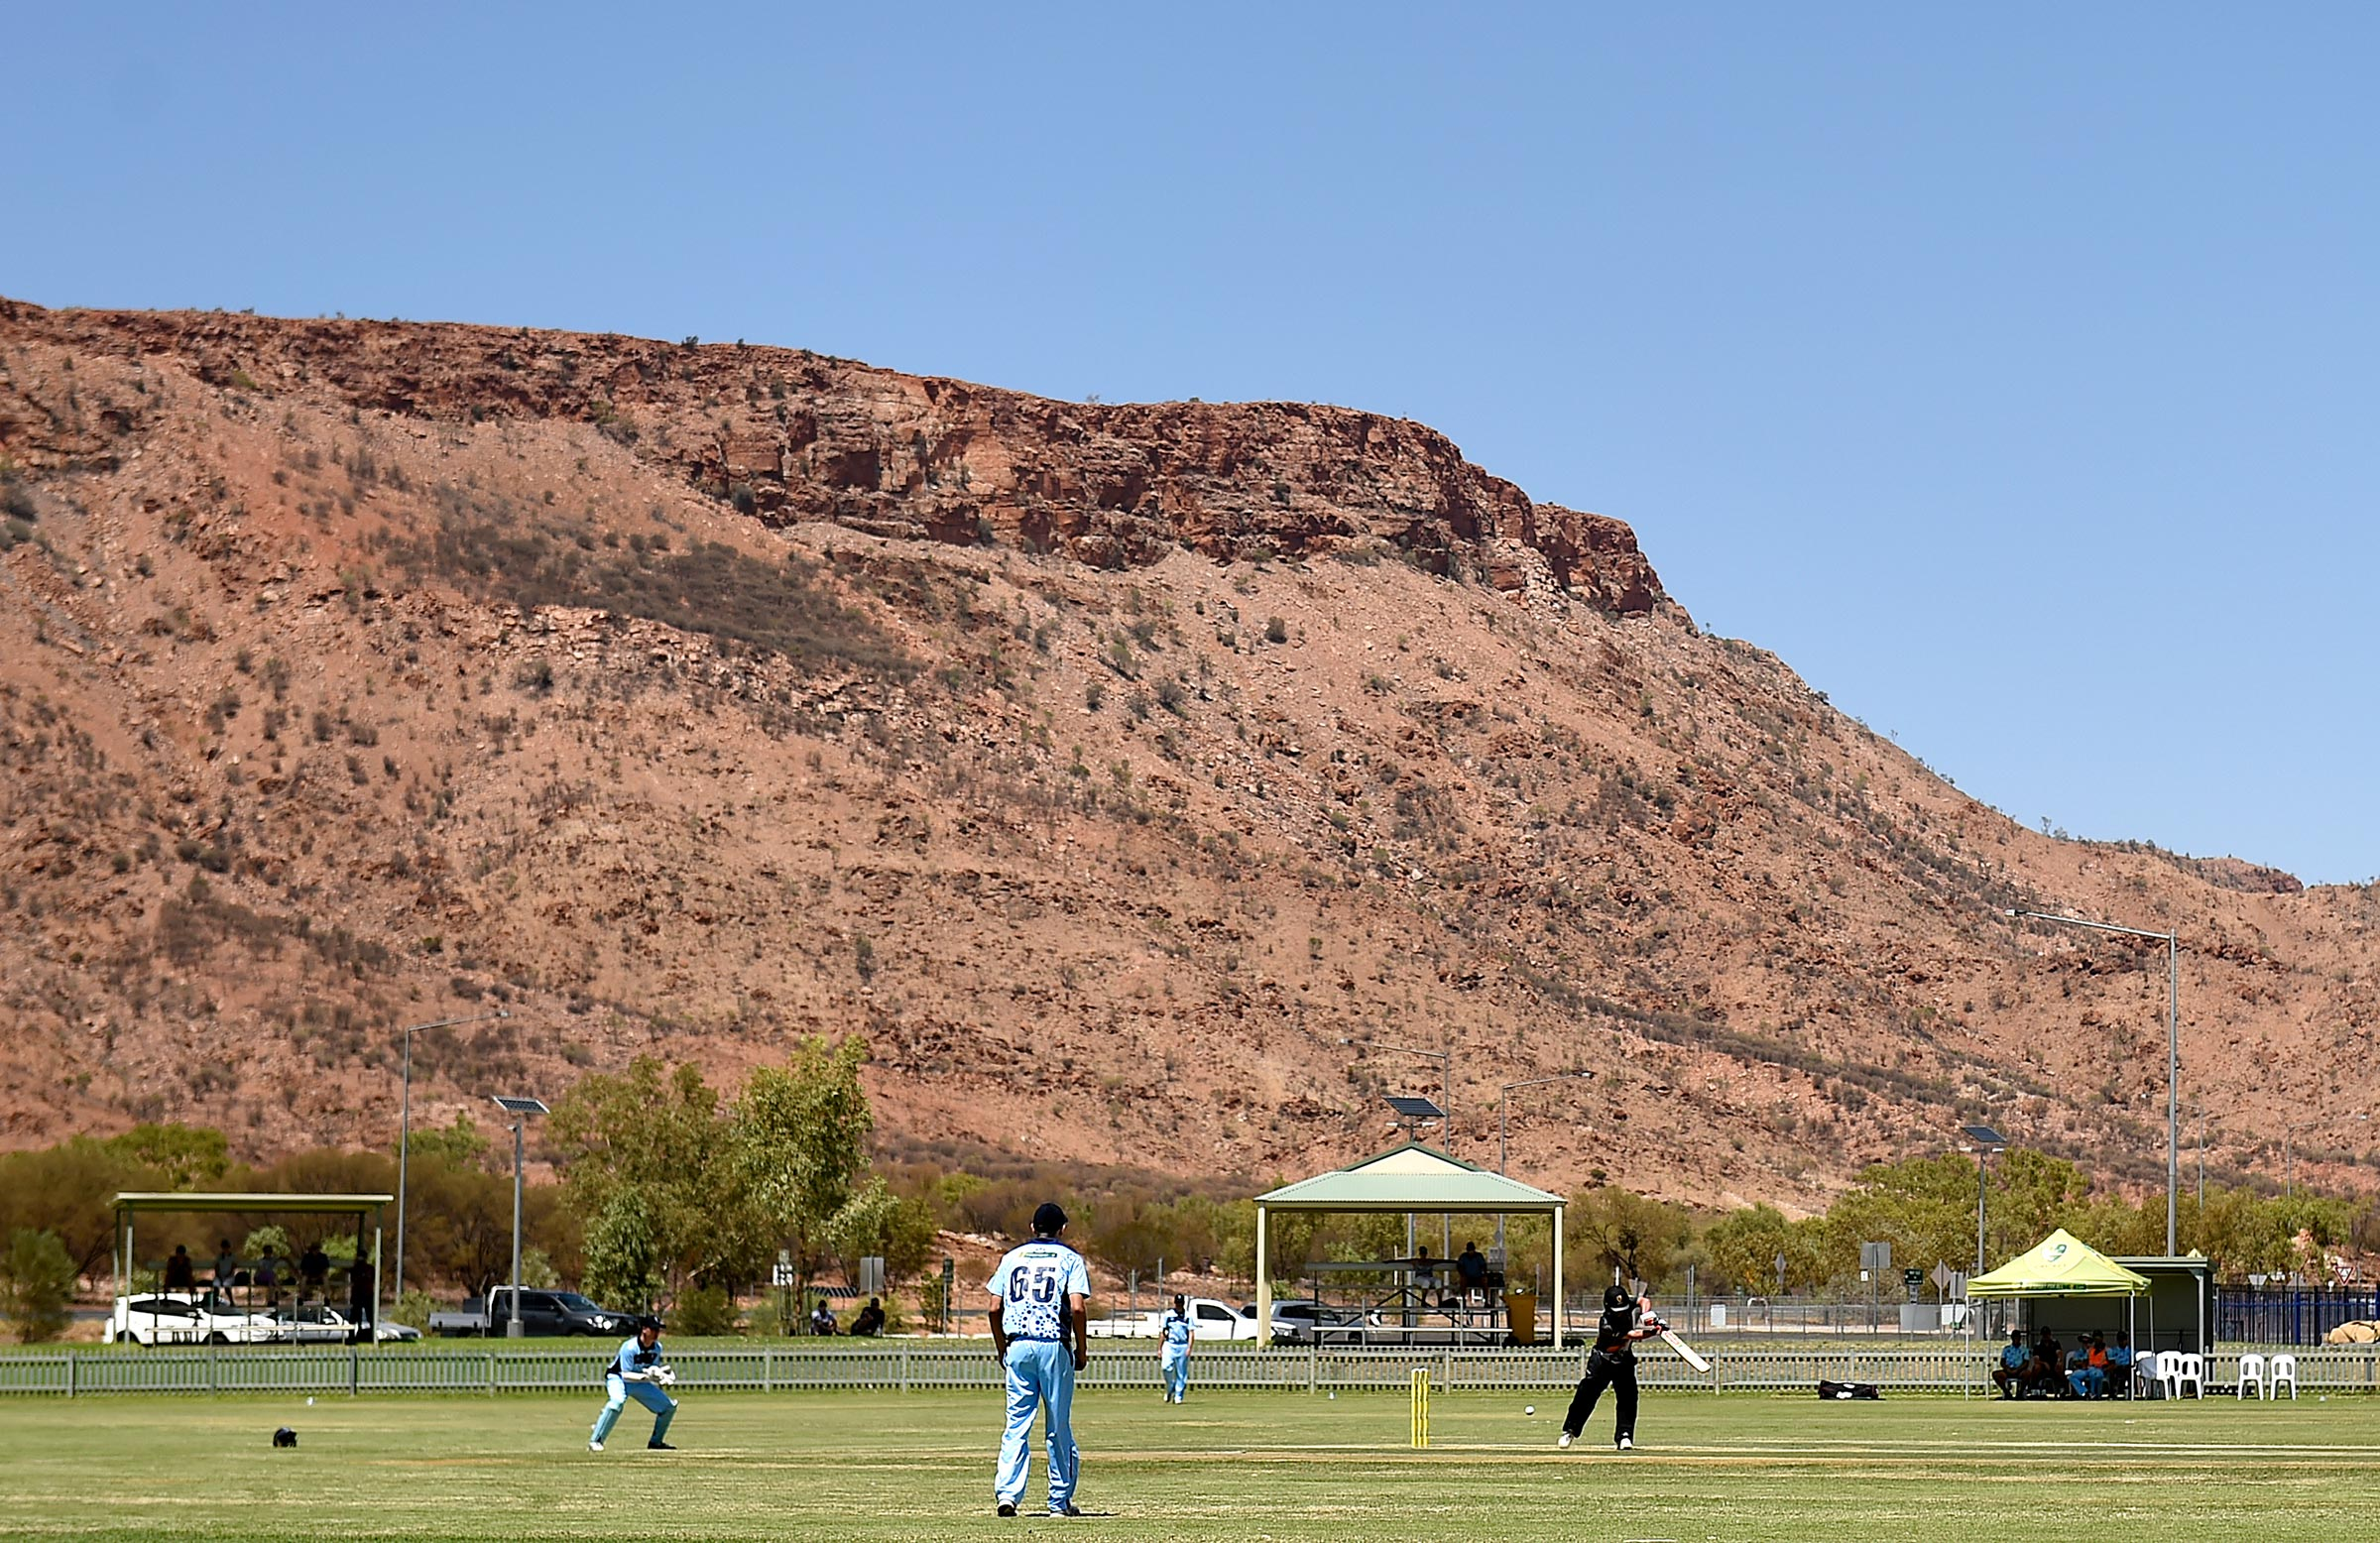 Traeger Park in Alice Springs is hosting the NICC // Getty